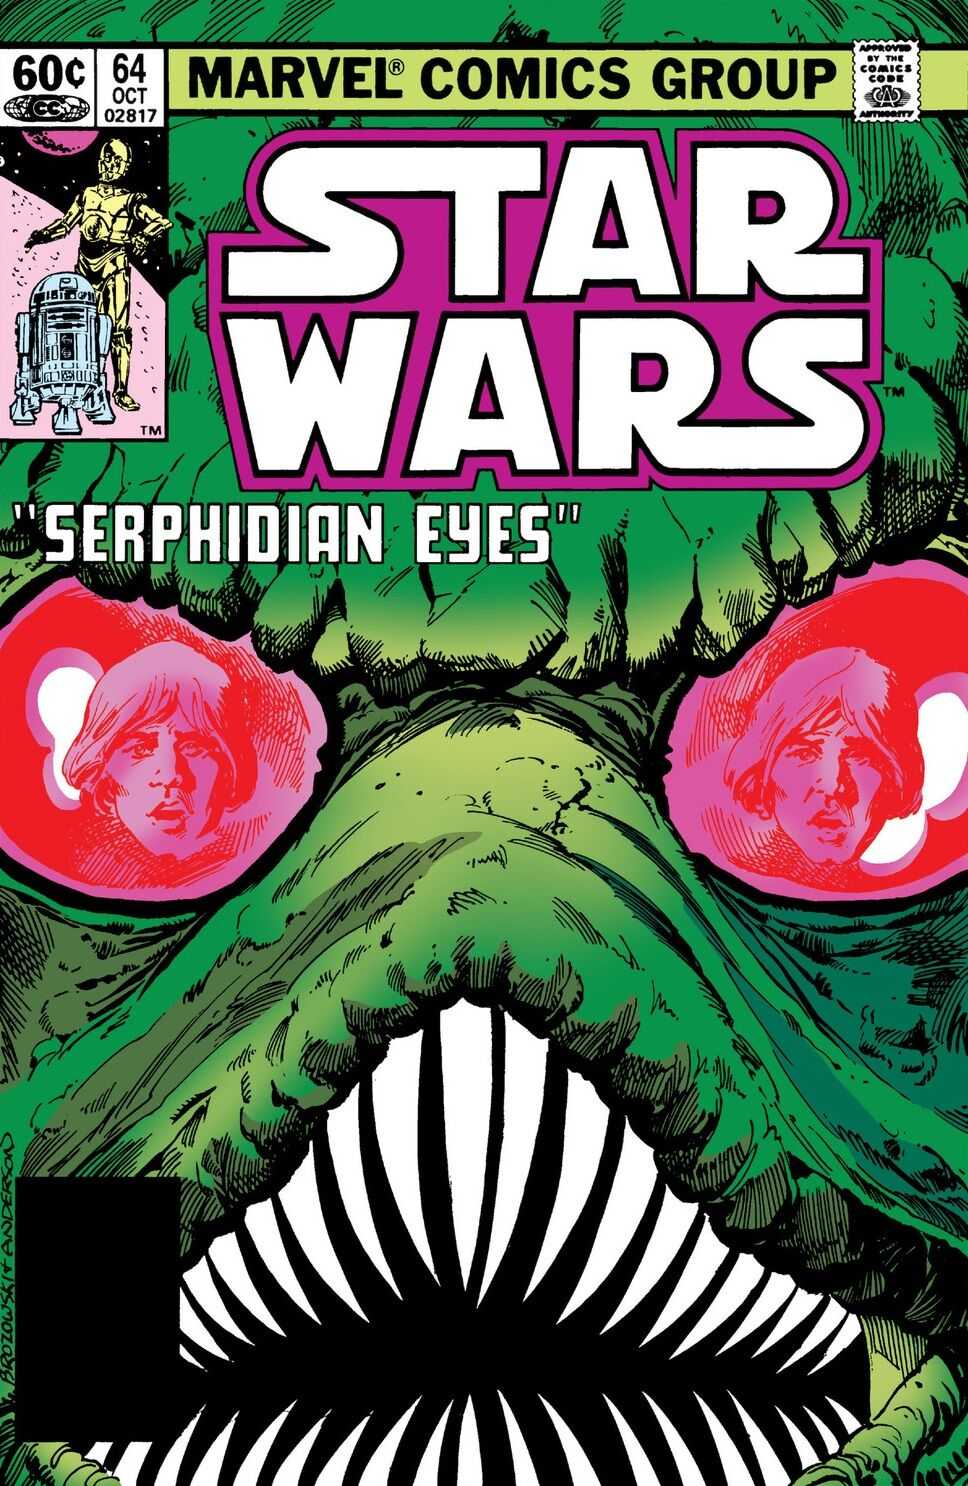 Star Wars: Serphidian Eyes